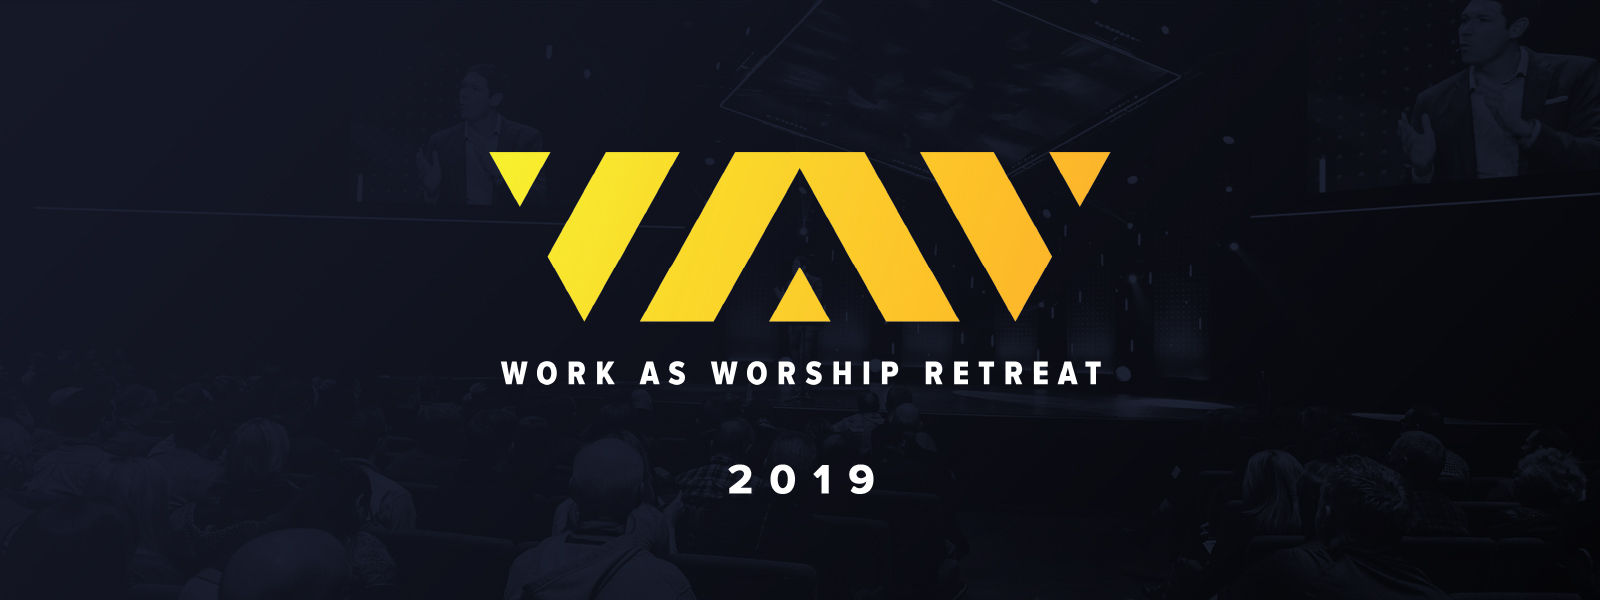 Work as Worship Retreat 2019